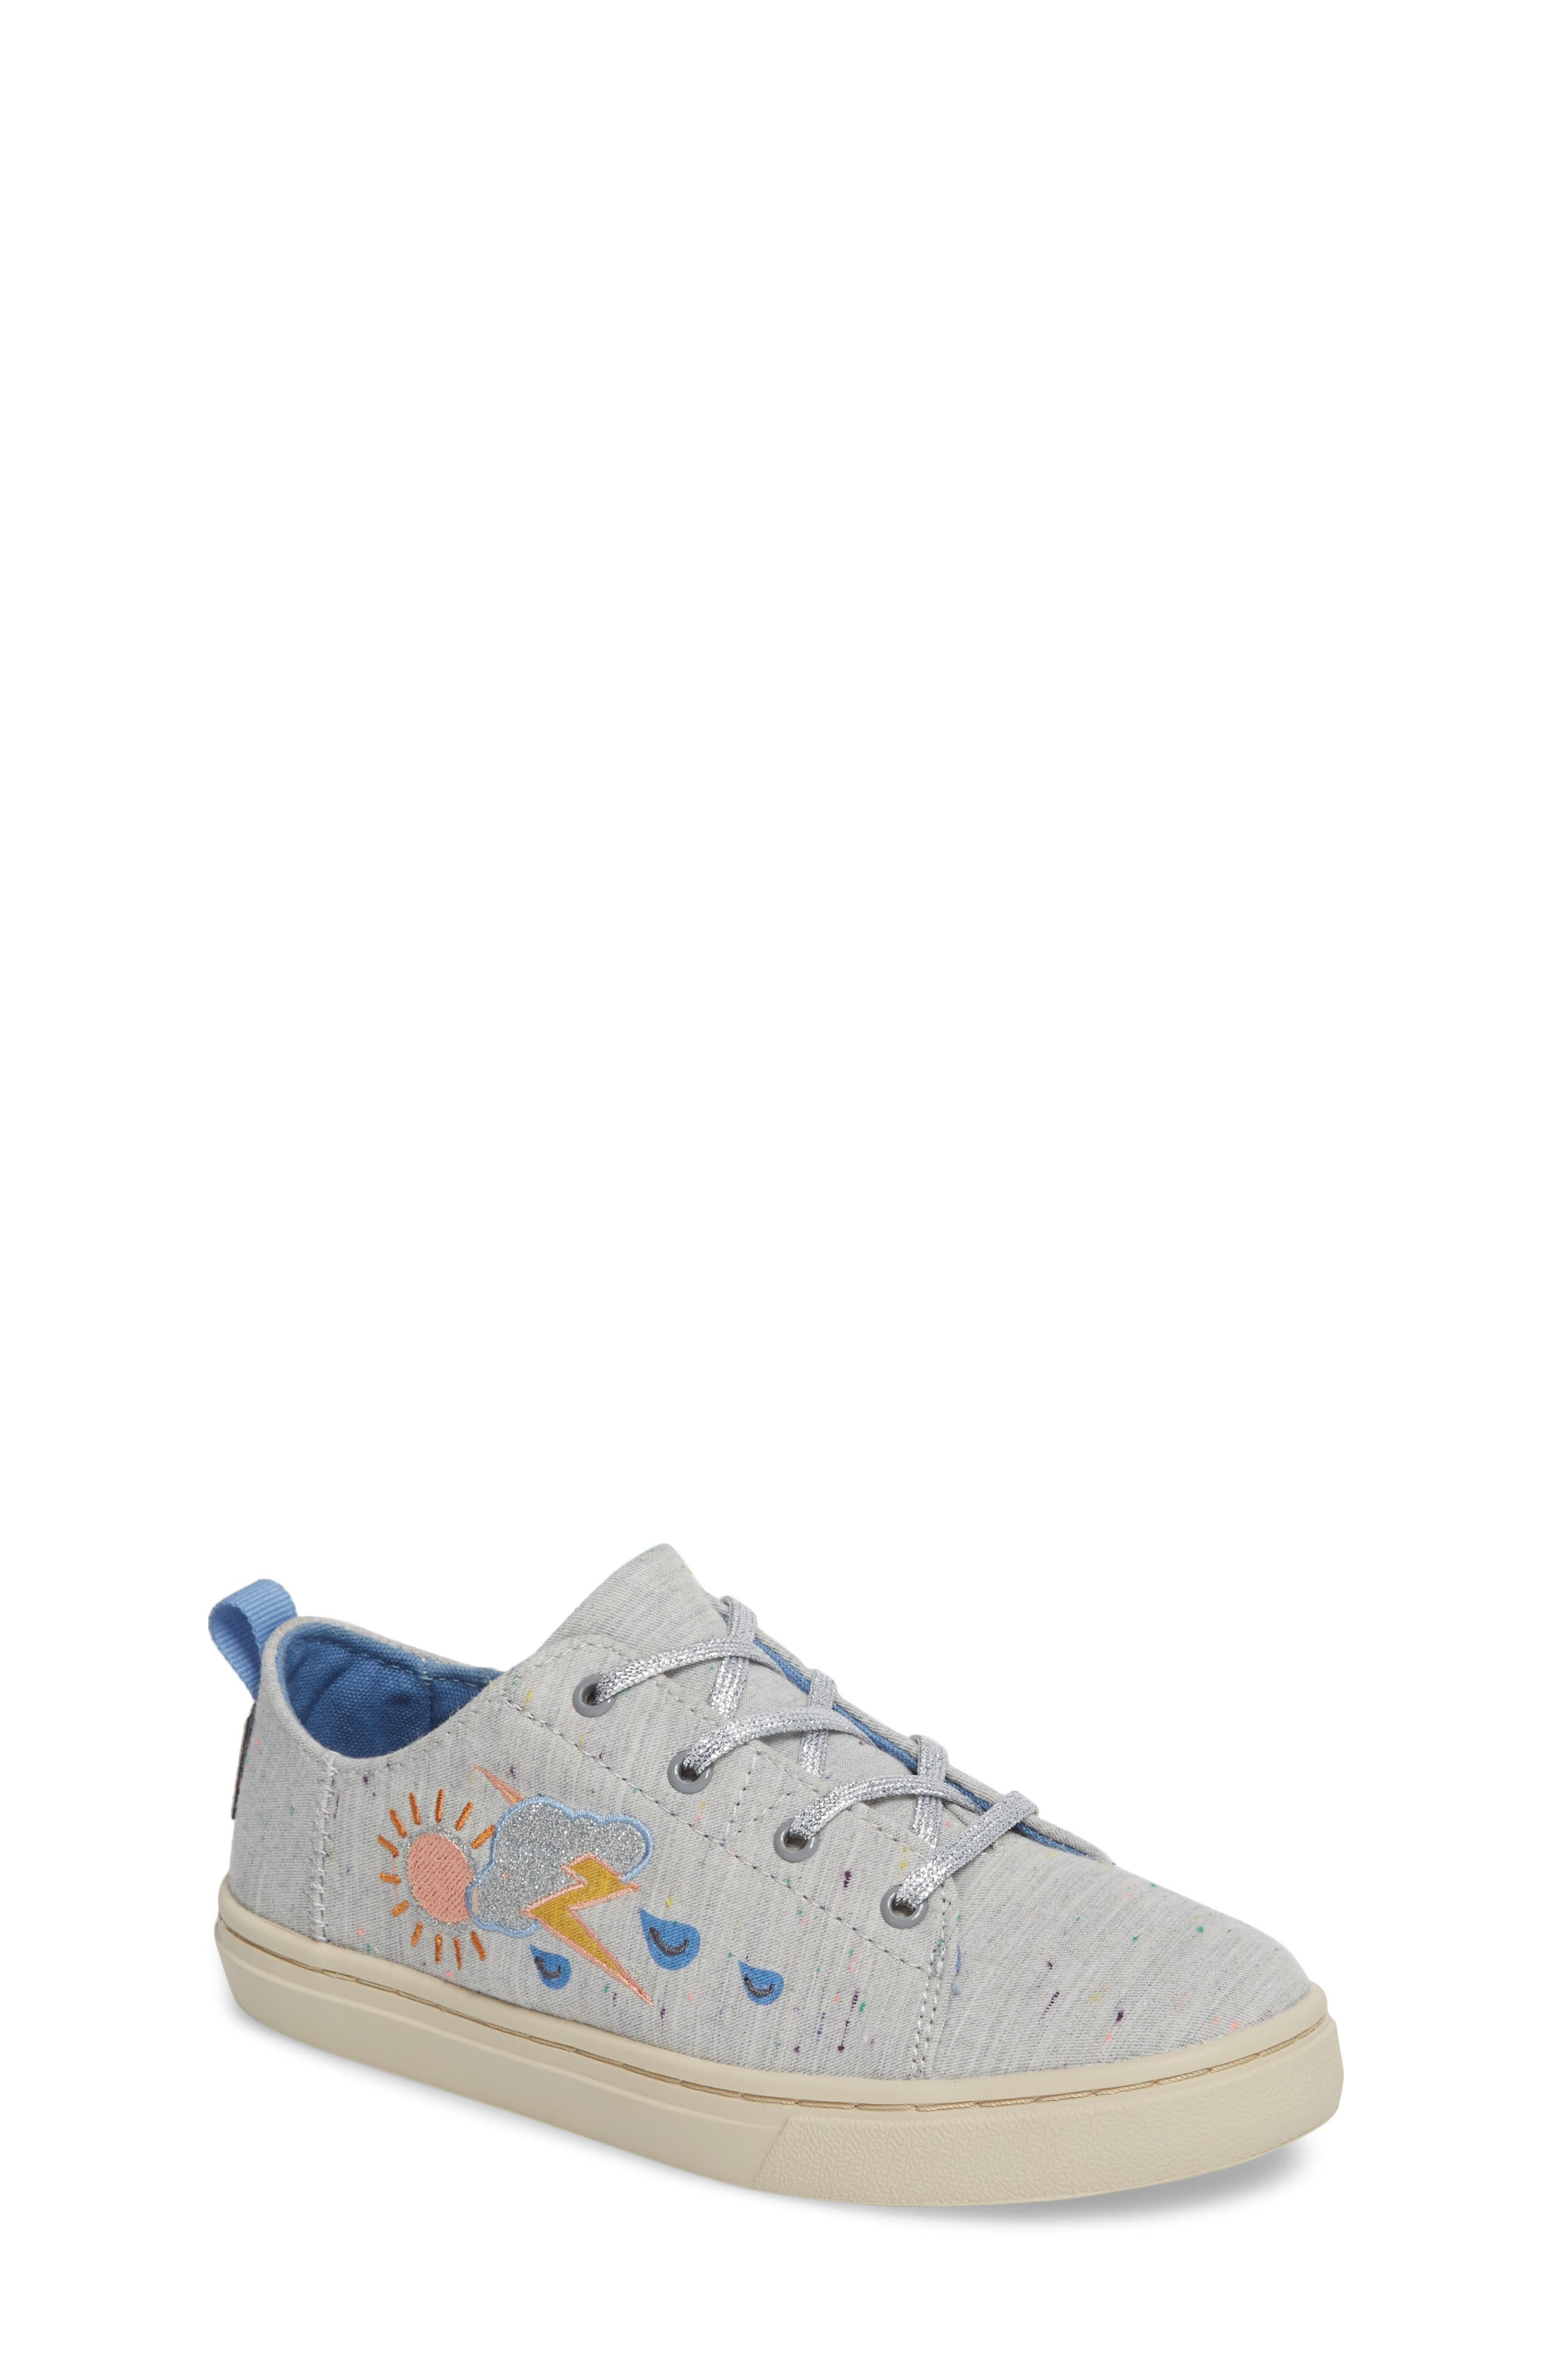 Lenny Embroidered Sneaker,                             Main thumbnail 1, color,                             020